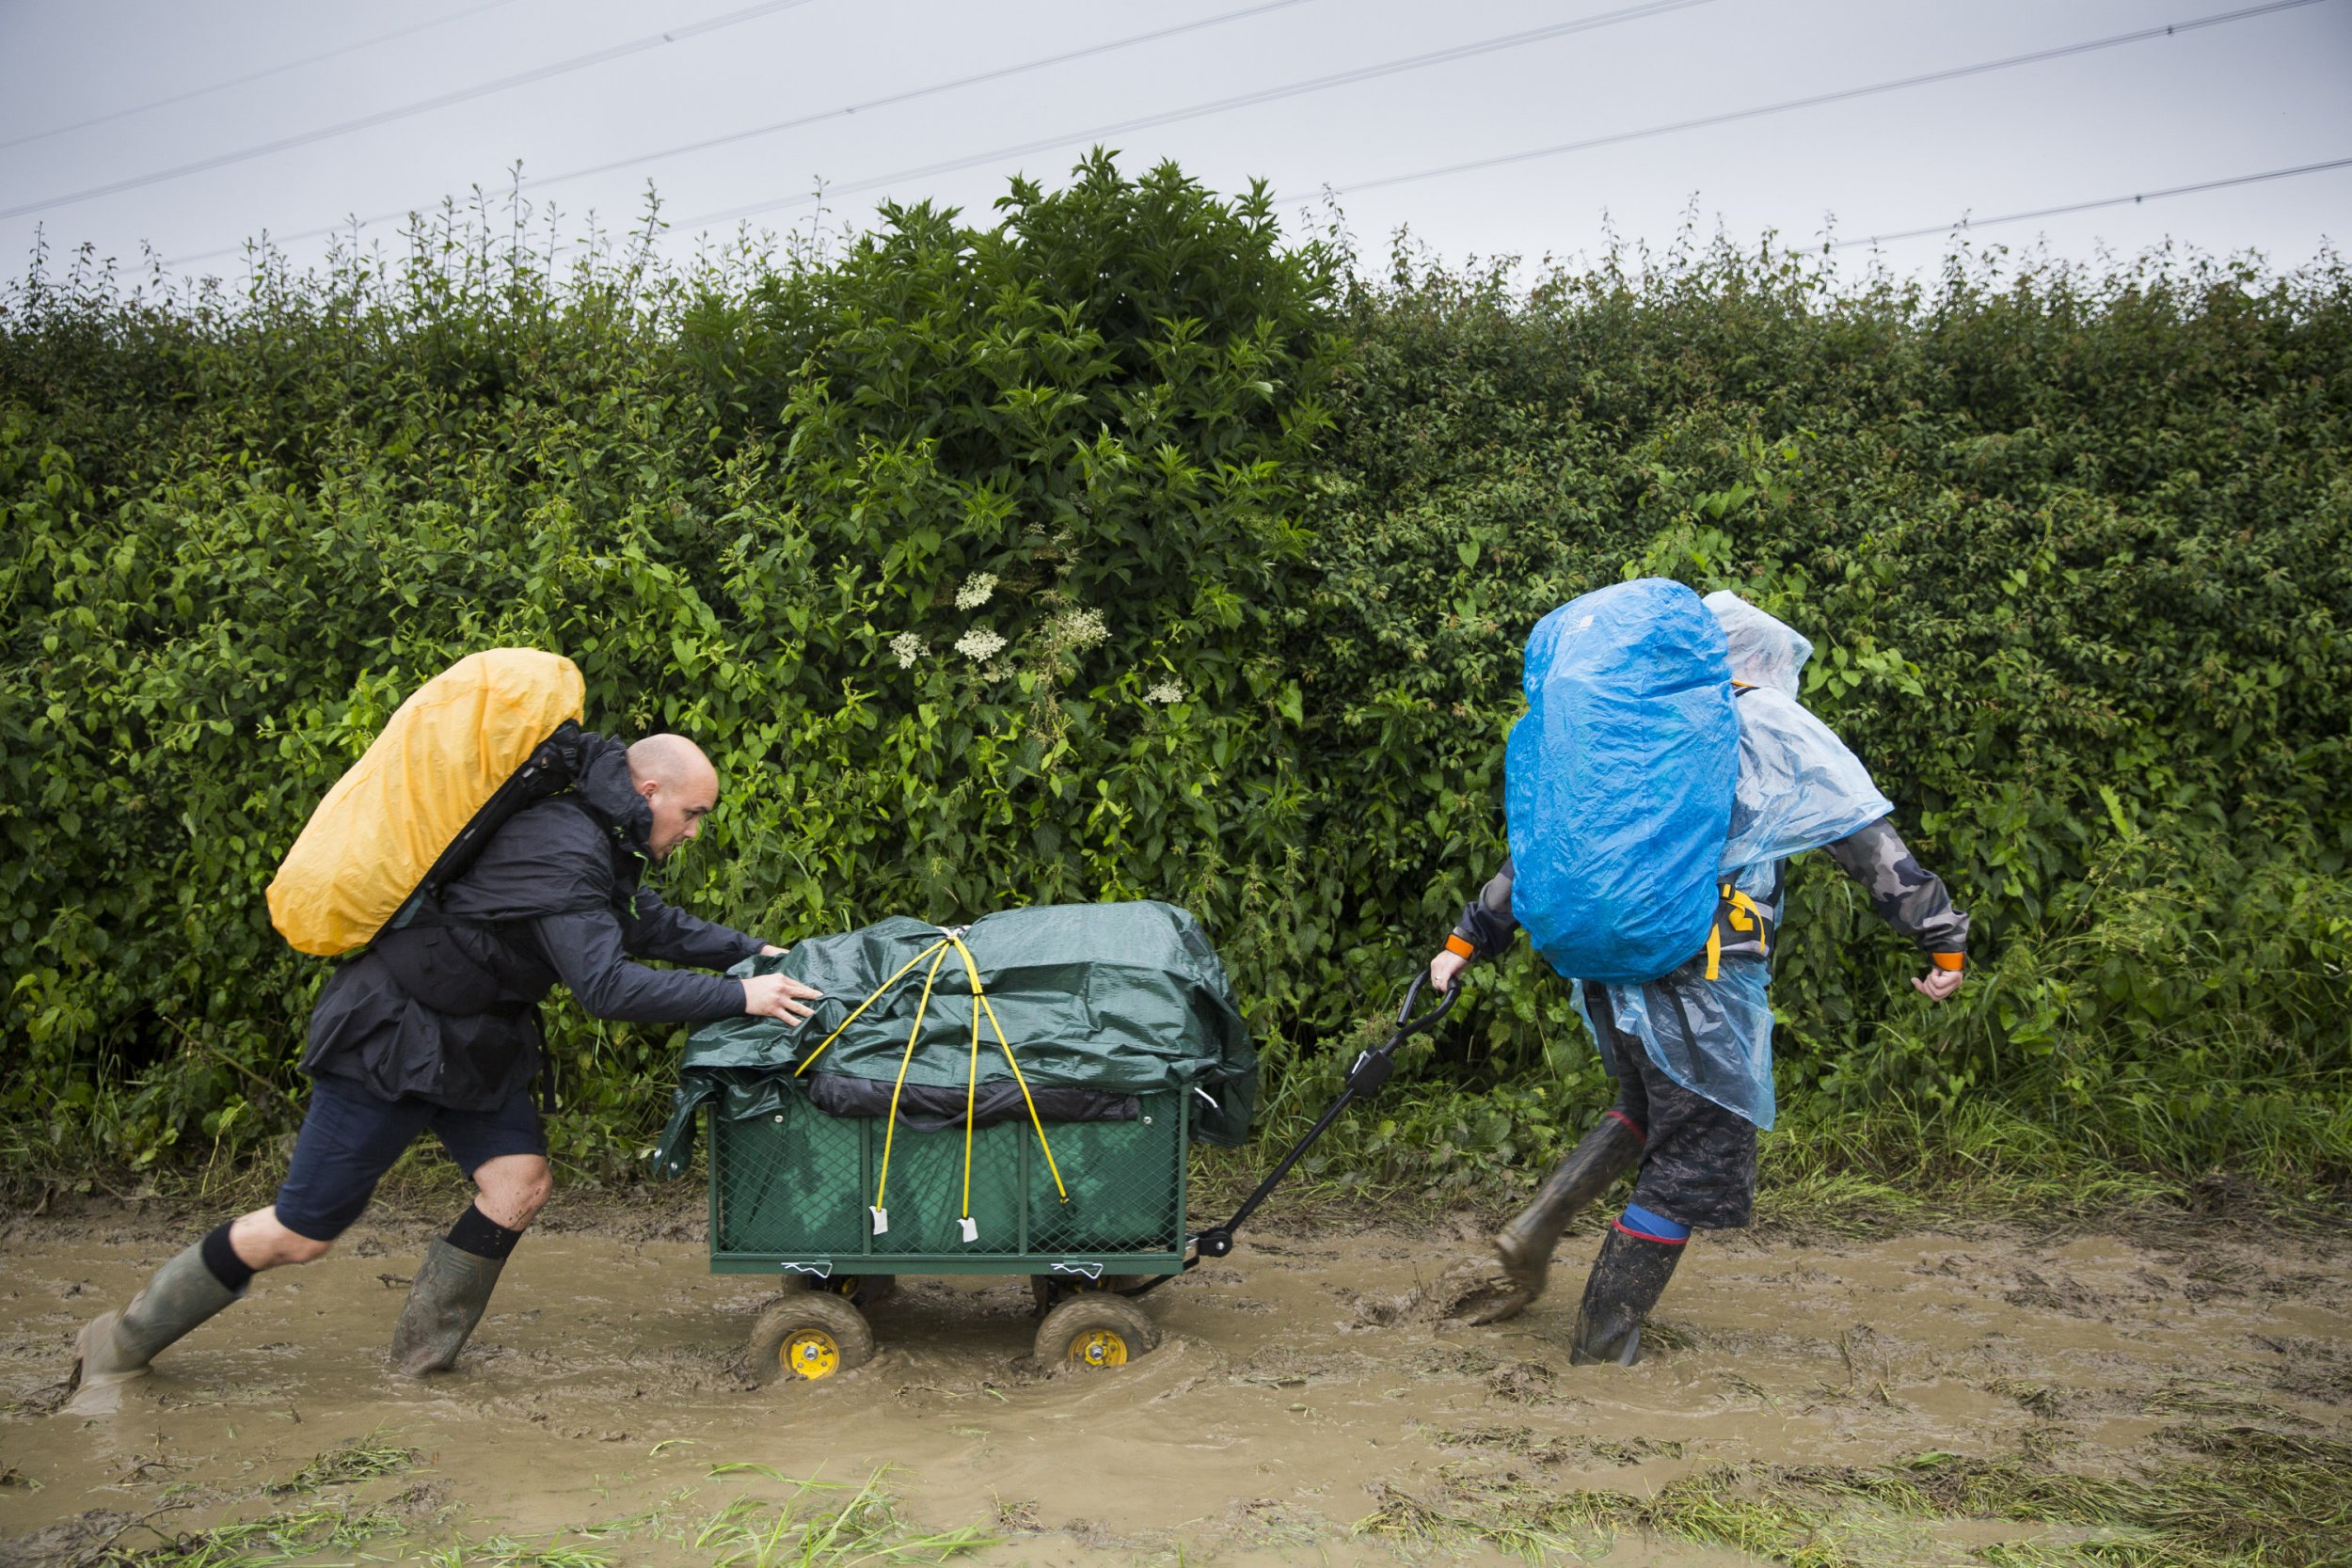 Revellers arrive at Glastonbury Festival this morning amid the heavy rain and muddy conditions . June 22 2016.